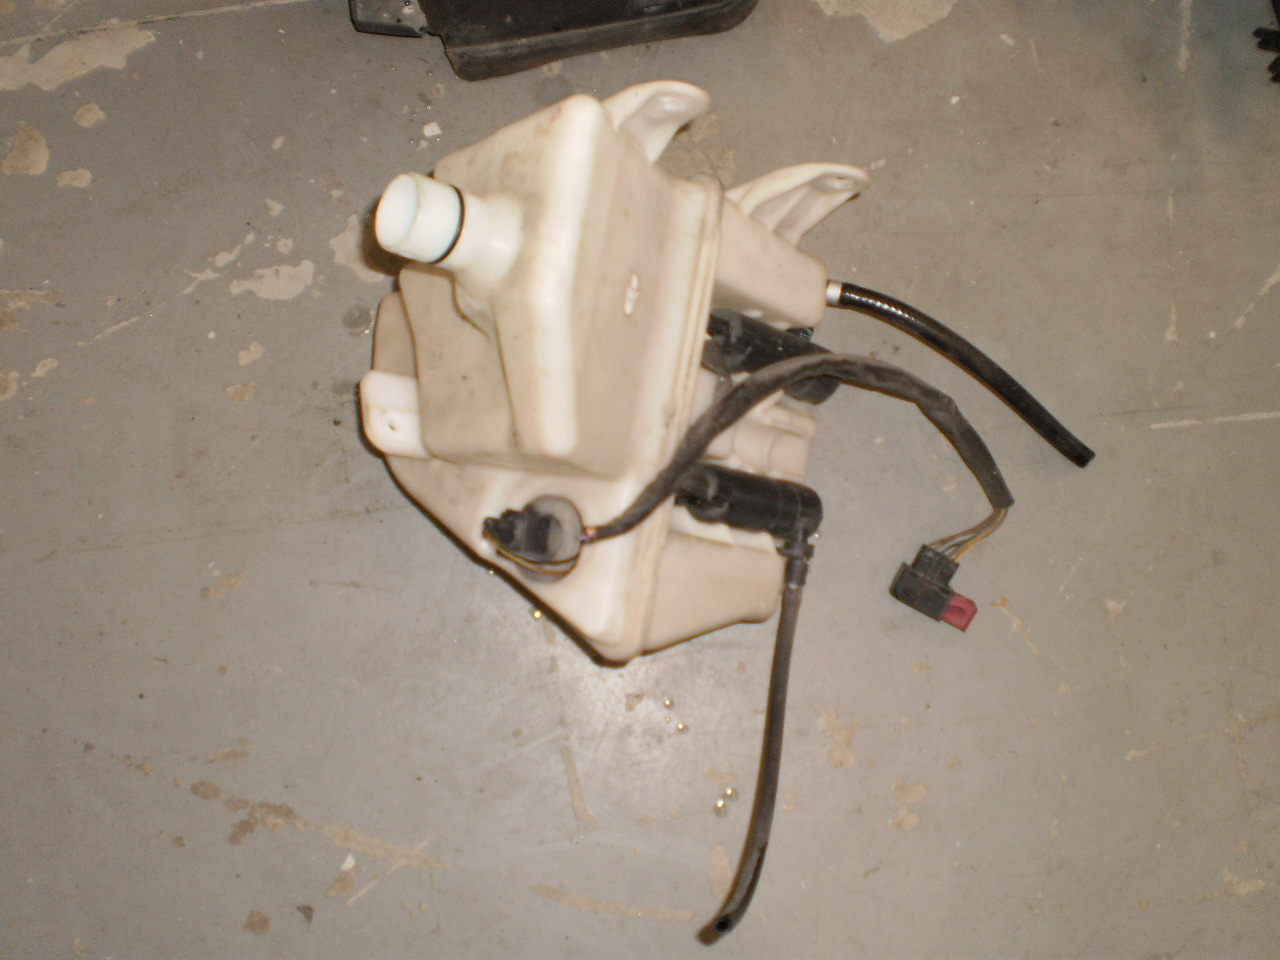 2007 SAAB 9-3 Washer Fluid Bottle